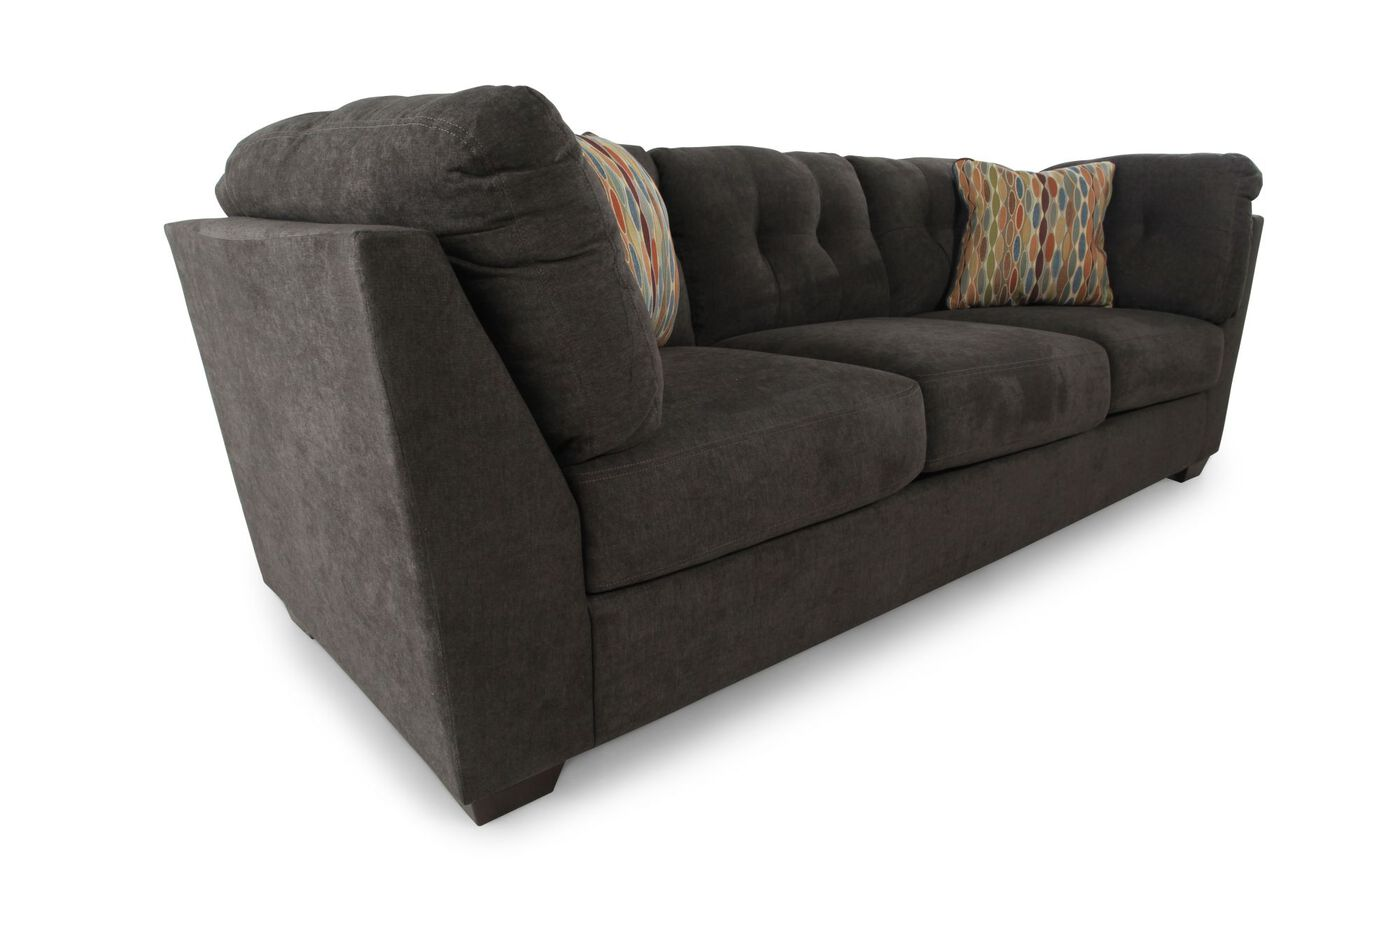 Tufted 103 microfiber sofa in chocolate brown mathis for Microfiber sofa